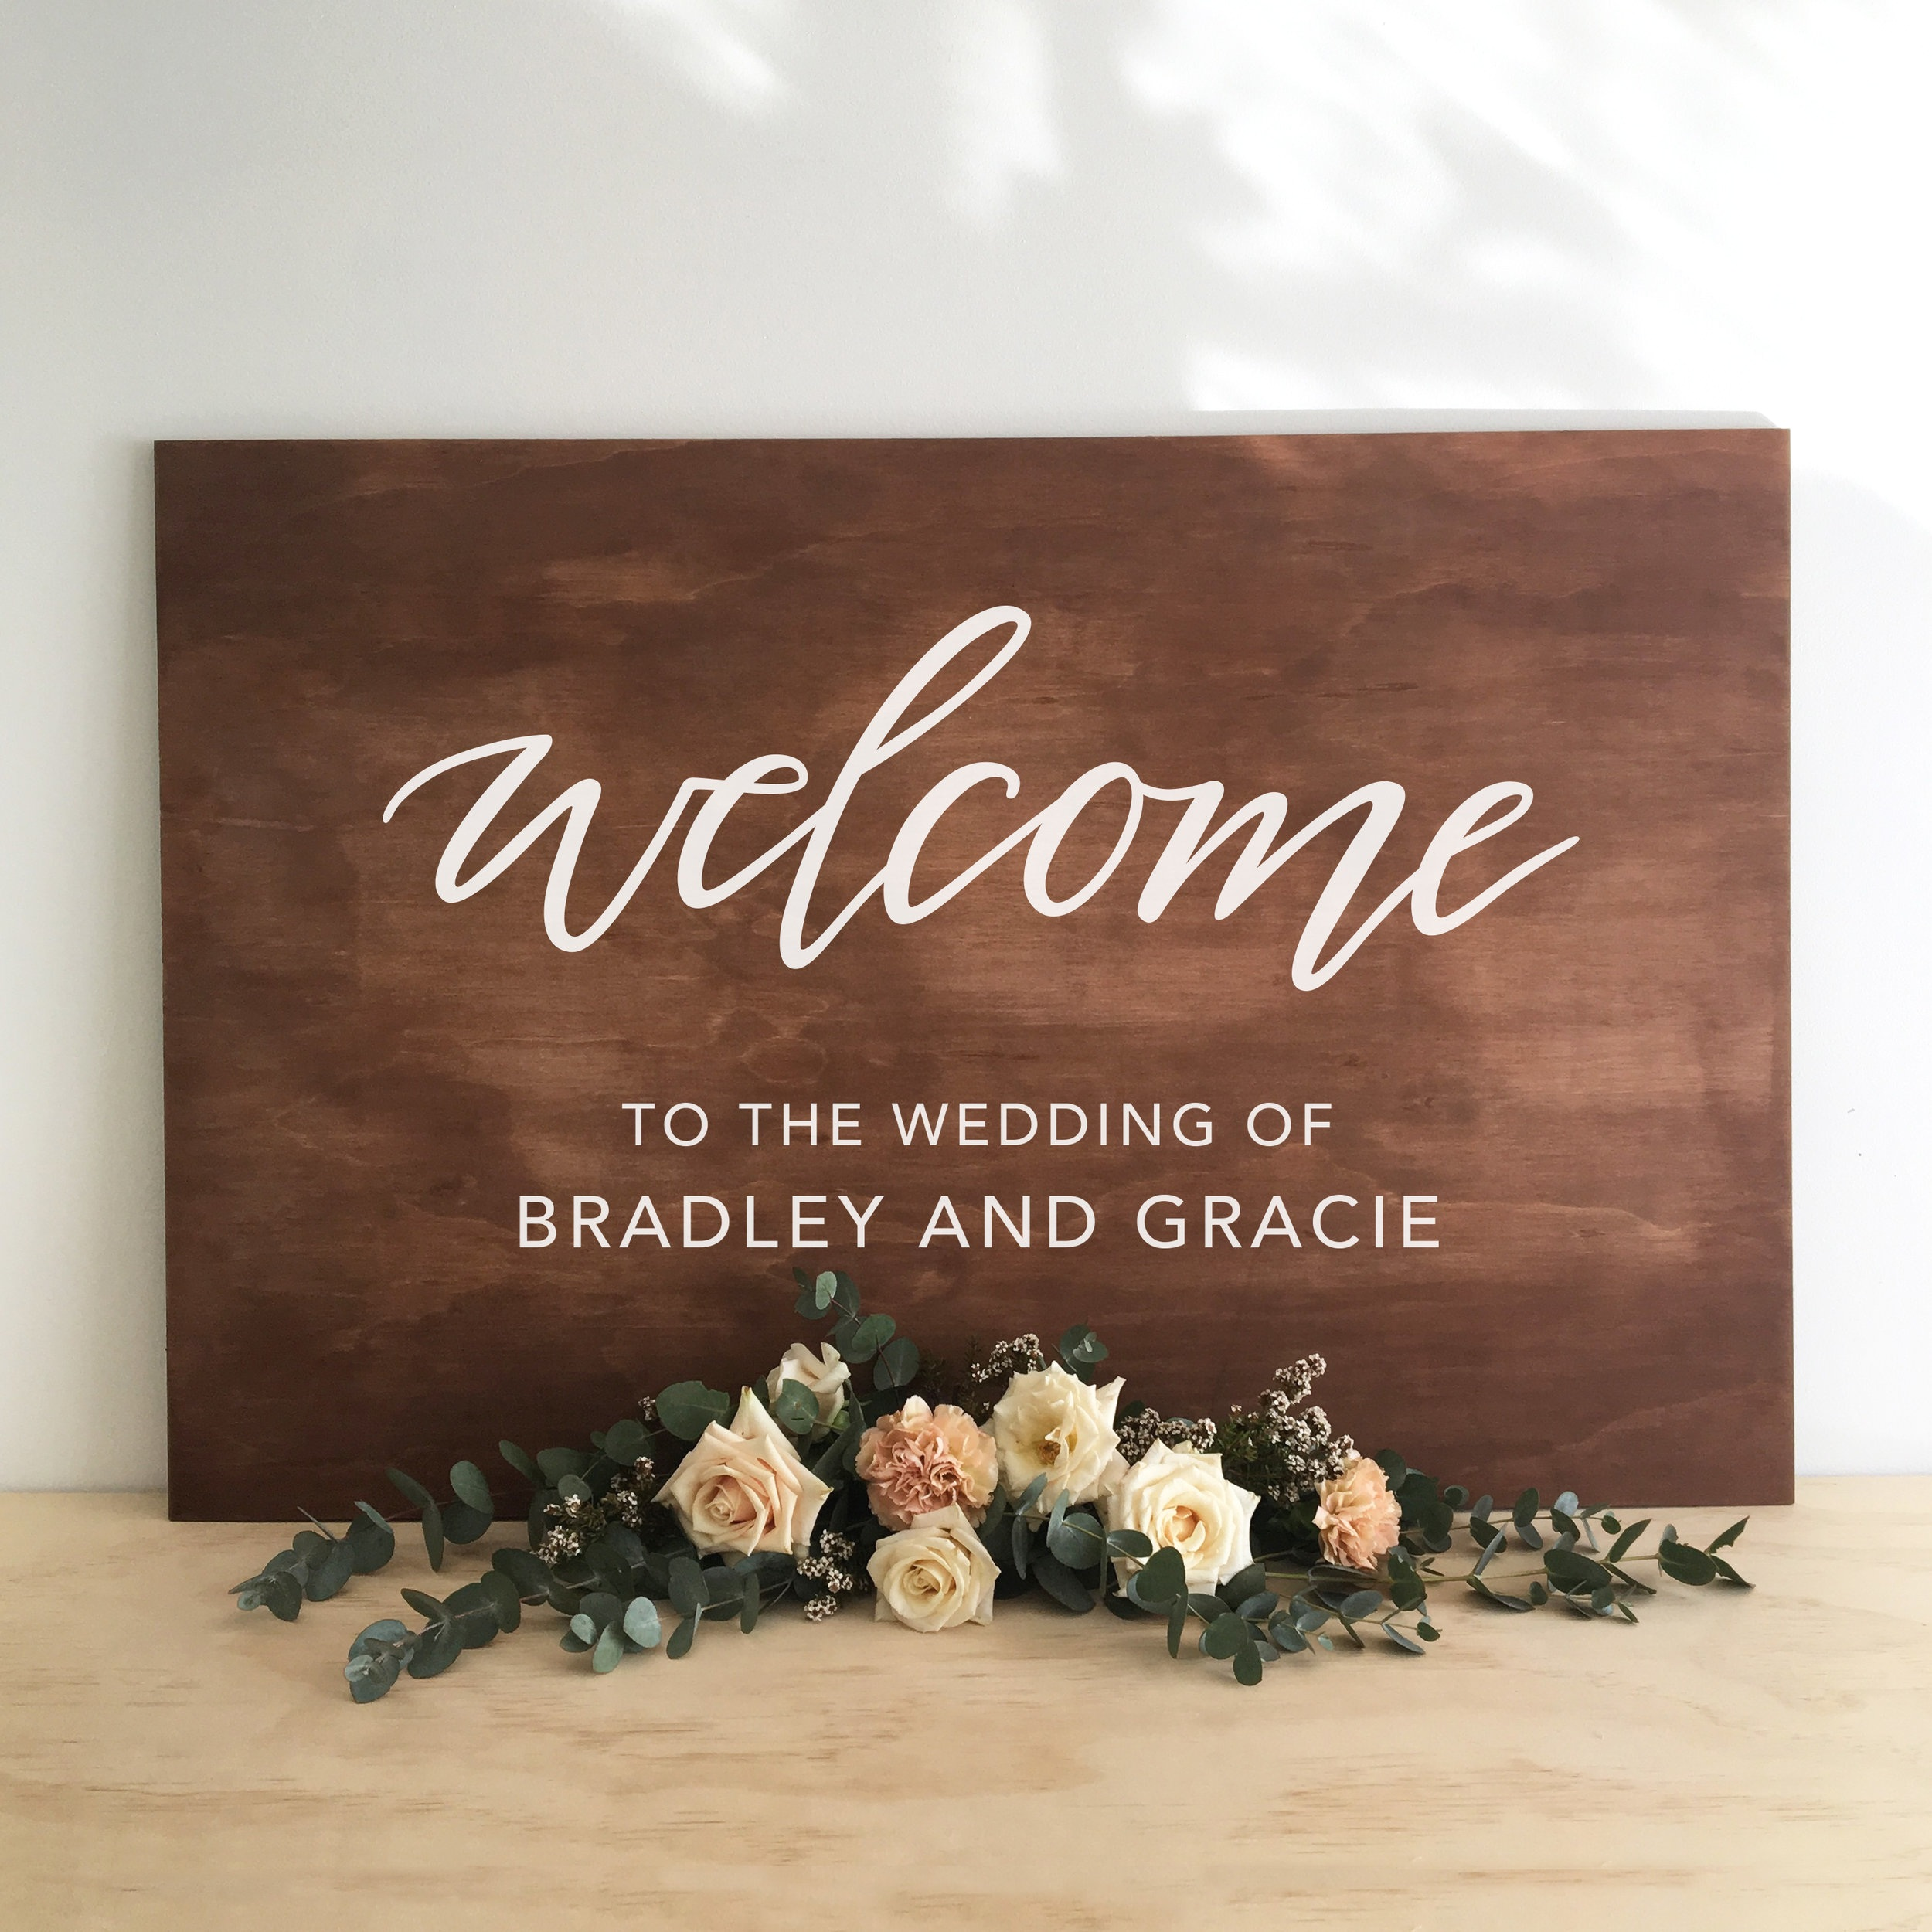 welcome-wooden-sign.jpg